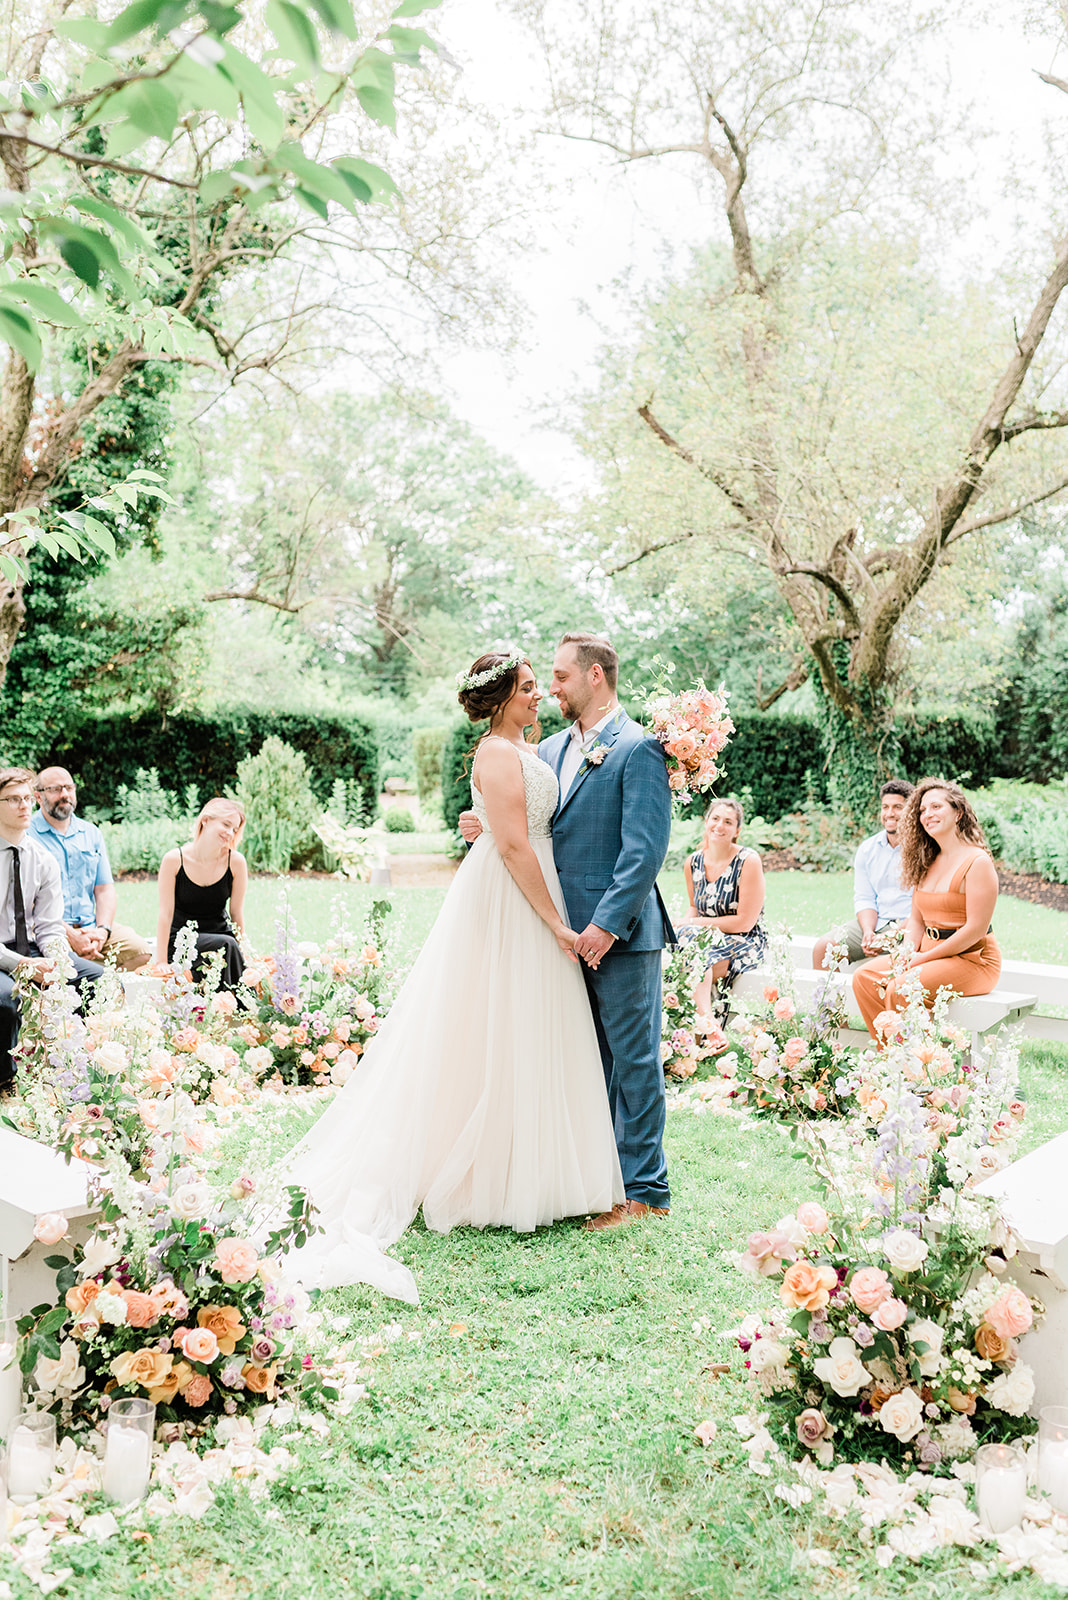 Micro Wedding with Ceremony in the Round and Colorful Flowers